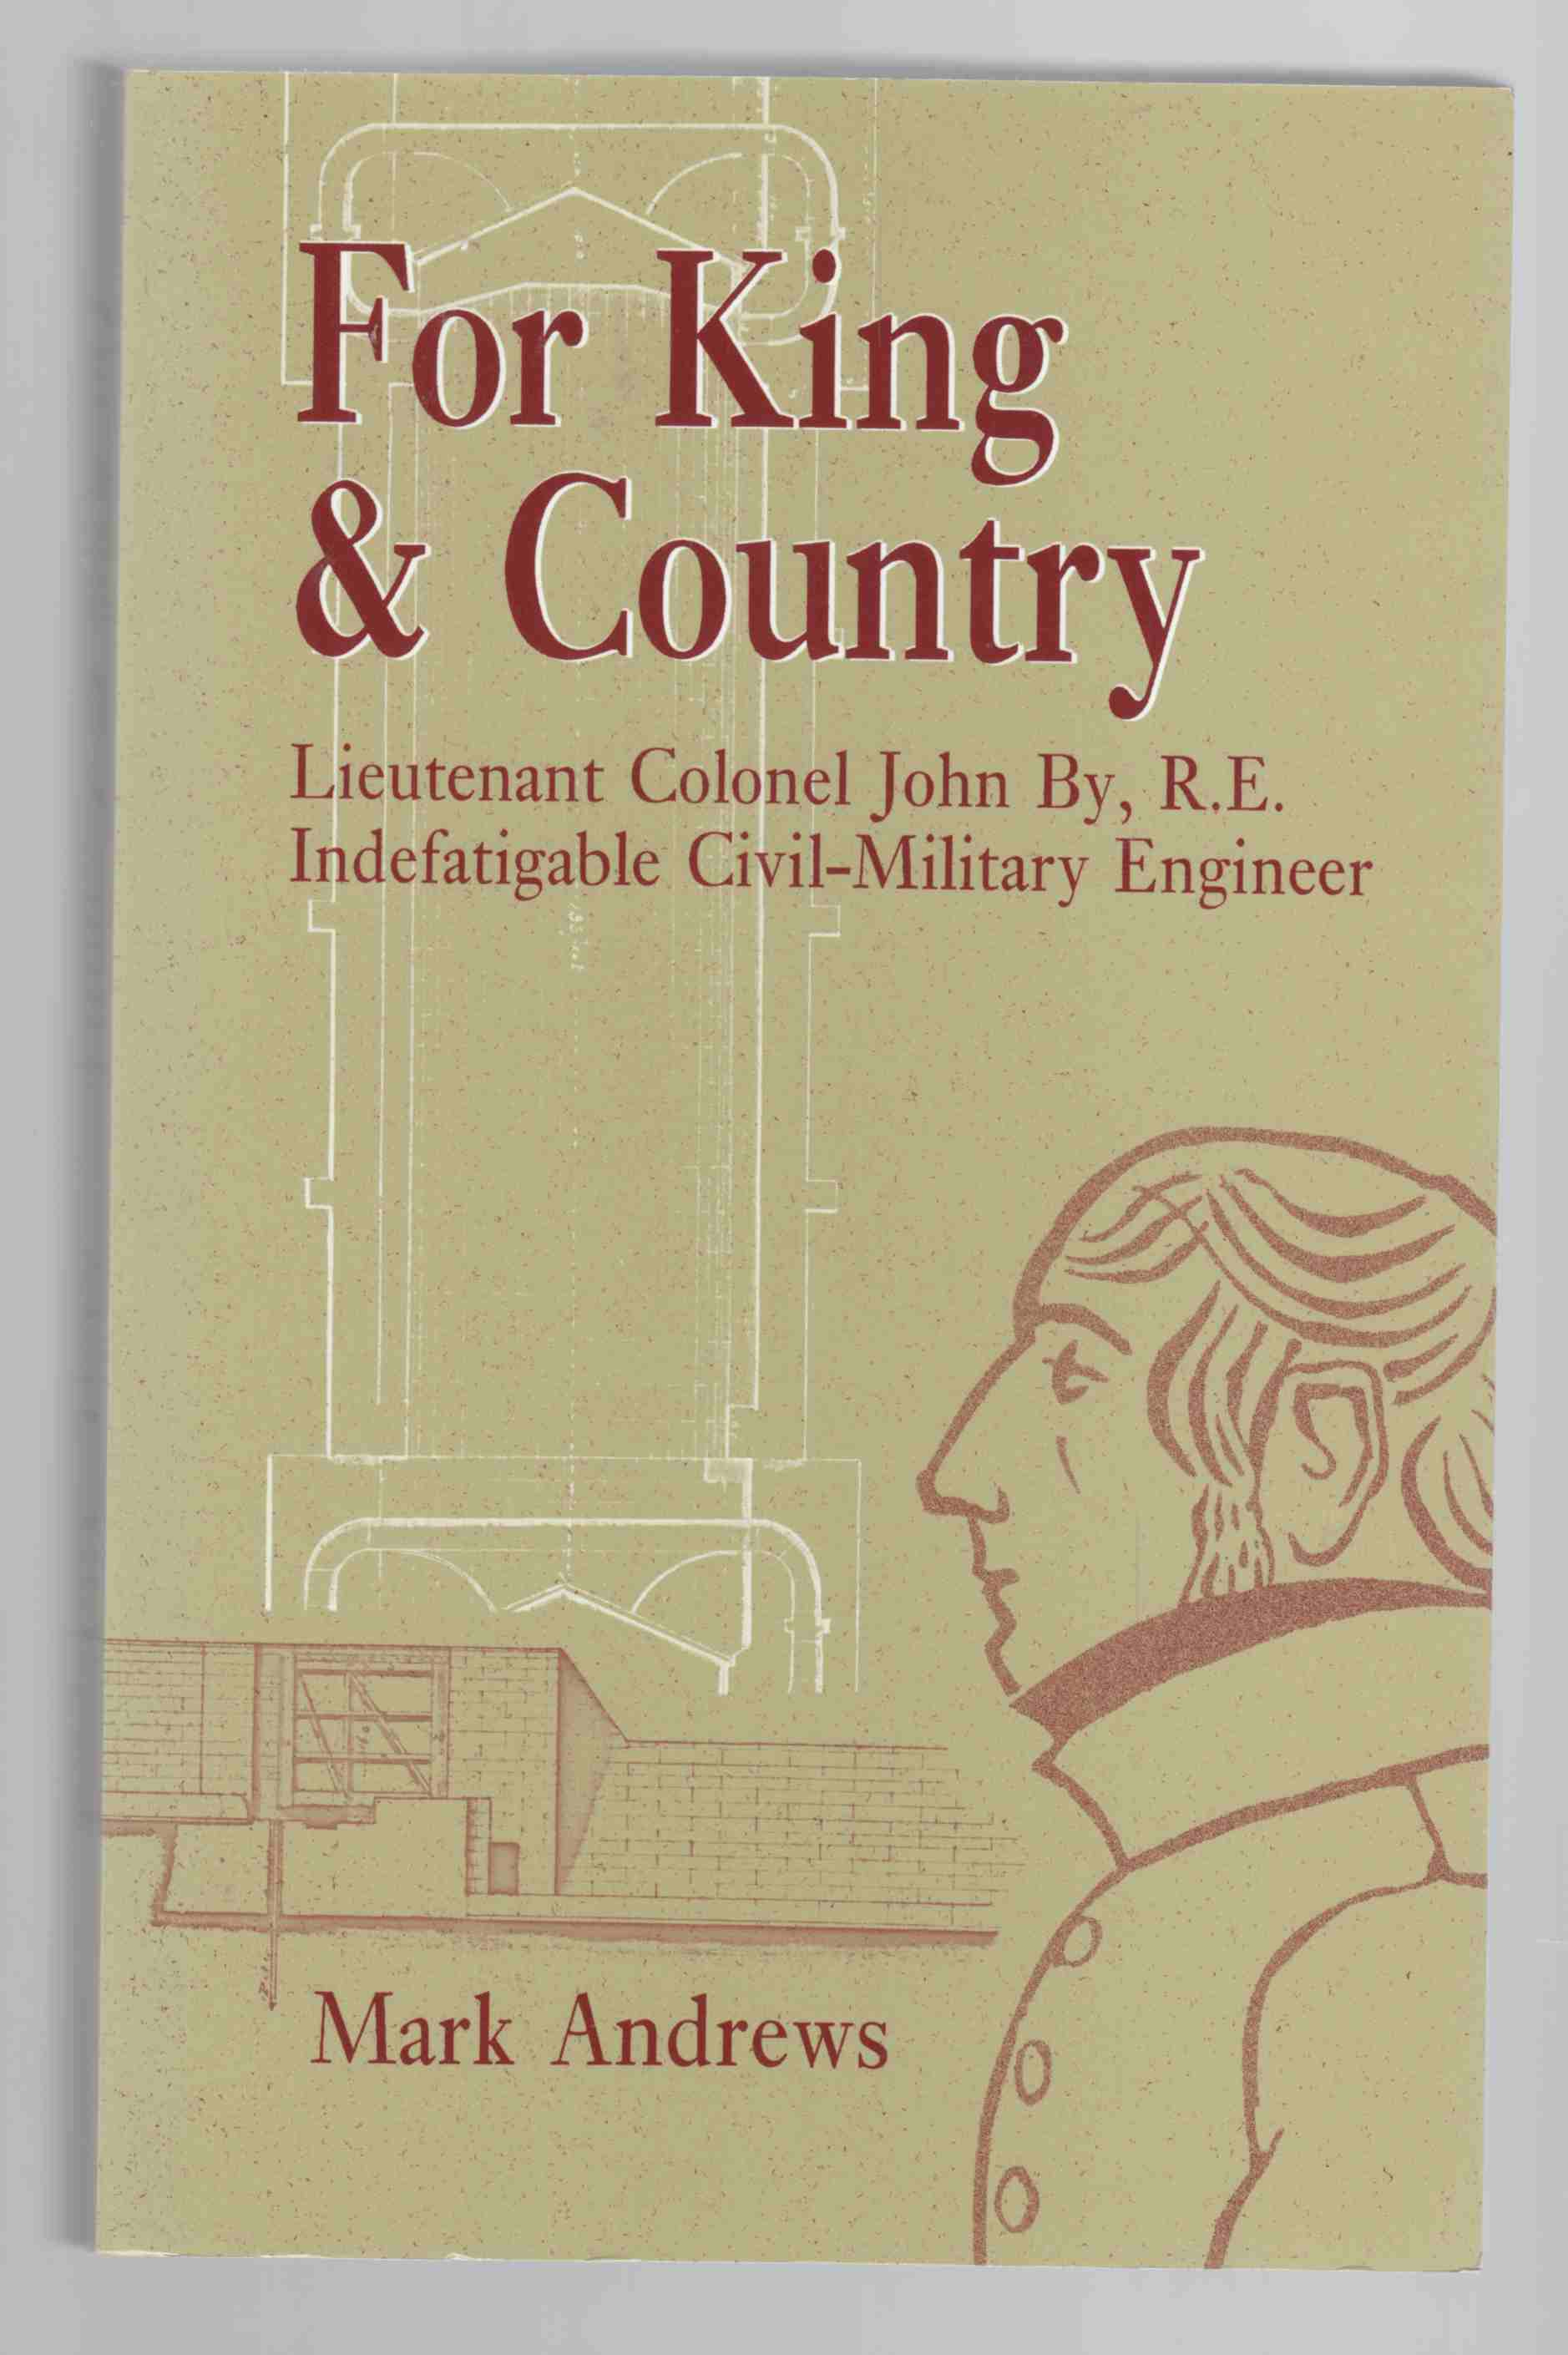 Image for For King & Country Lieutenant Colonel John By, R. E. Indefatigable Civil-Military Engineer